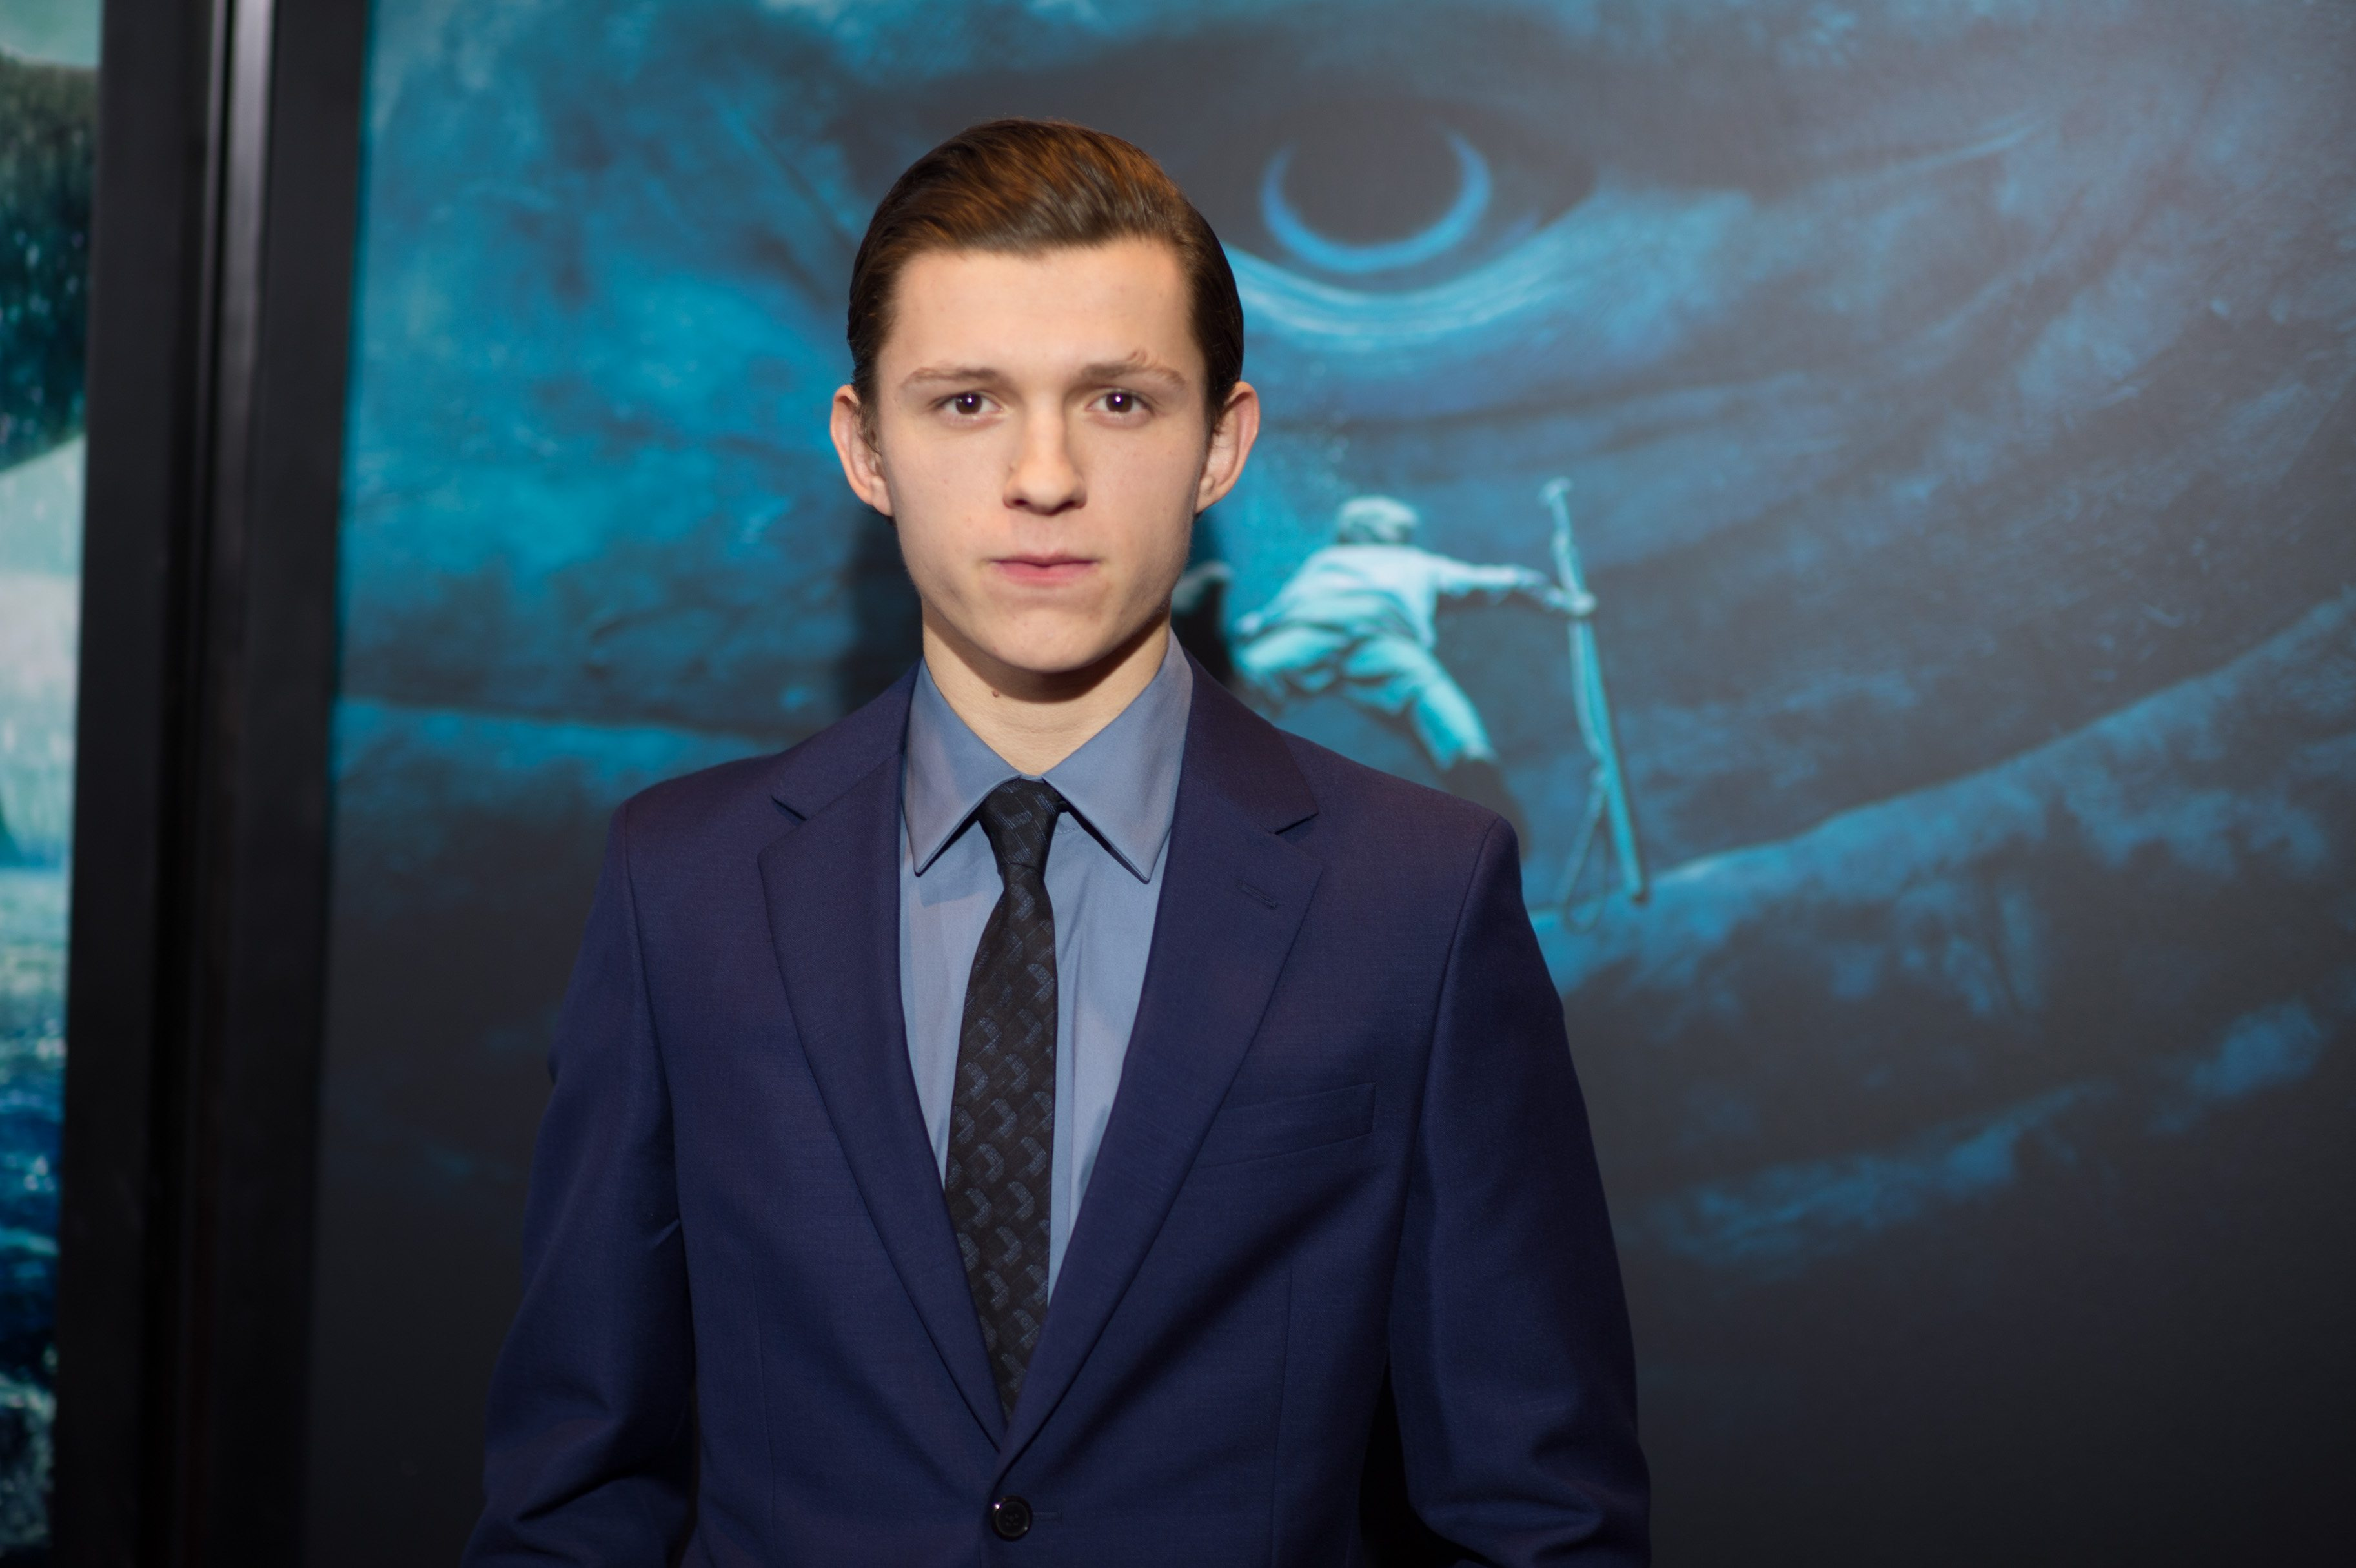 """NEW YORK, NY - DECEMBER 07:  Tom Holland arrives at the """"In The Heart Of The Sea"""" New York Premiere at Frederick P. Rose Hall, Jazz at Lincoln Center on December 7, 2015 in New York City.  (Photo by Dave Kotinsky/Getty Images)"""